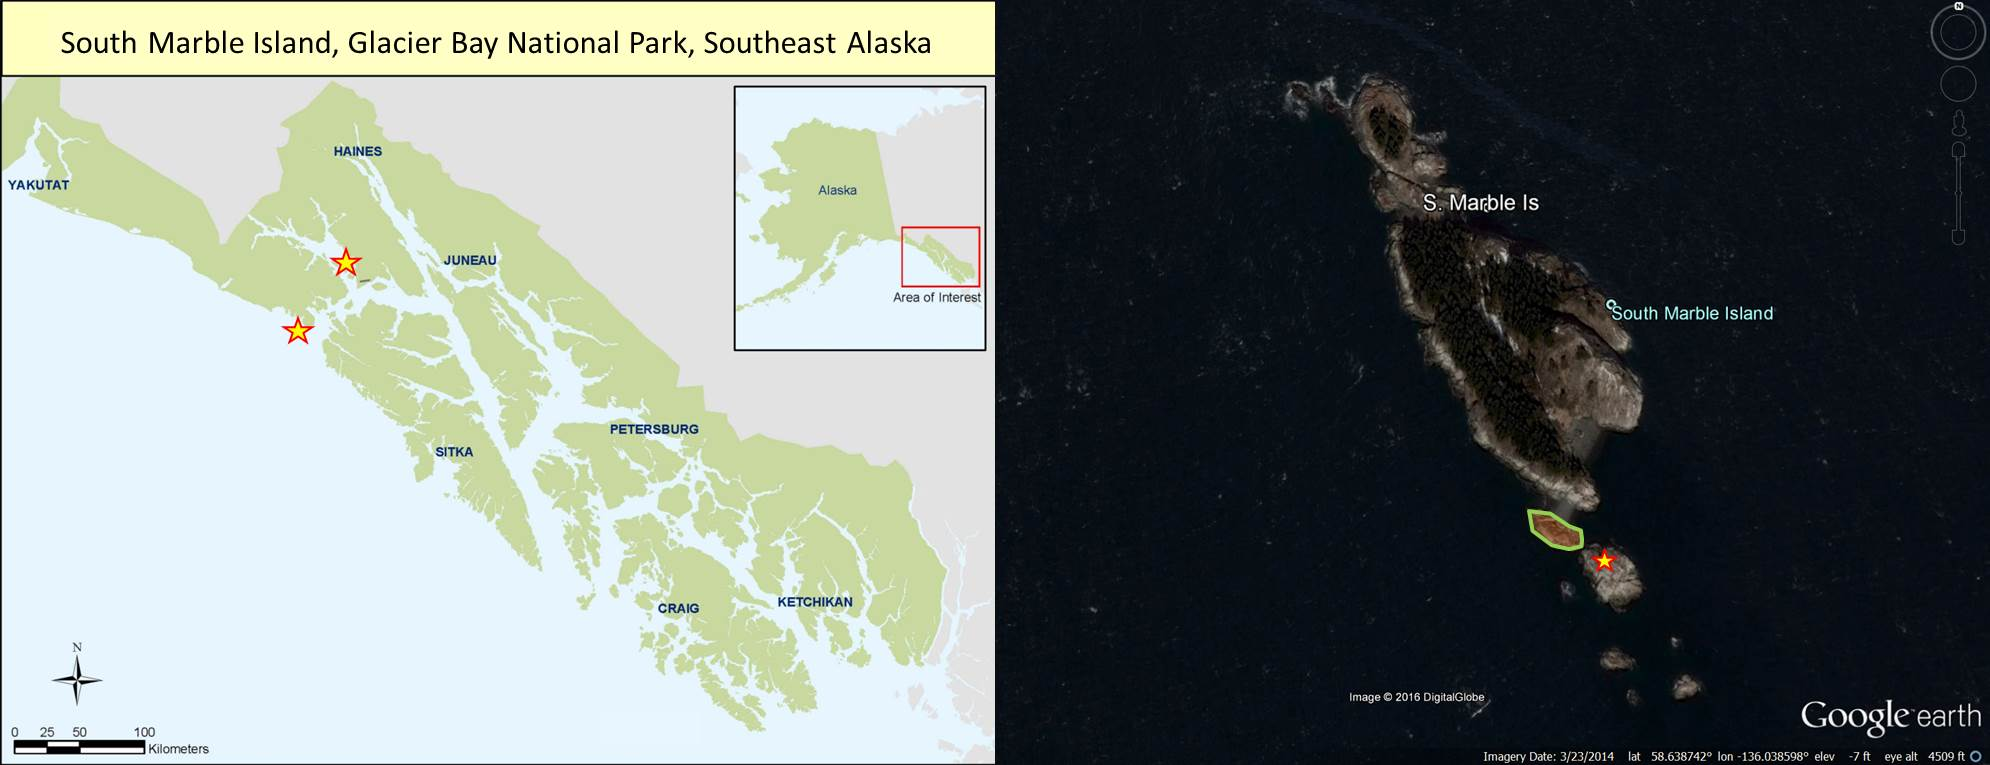 Map and image of sea lion haul outs in Glacier Bay